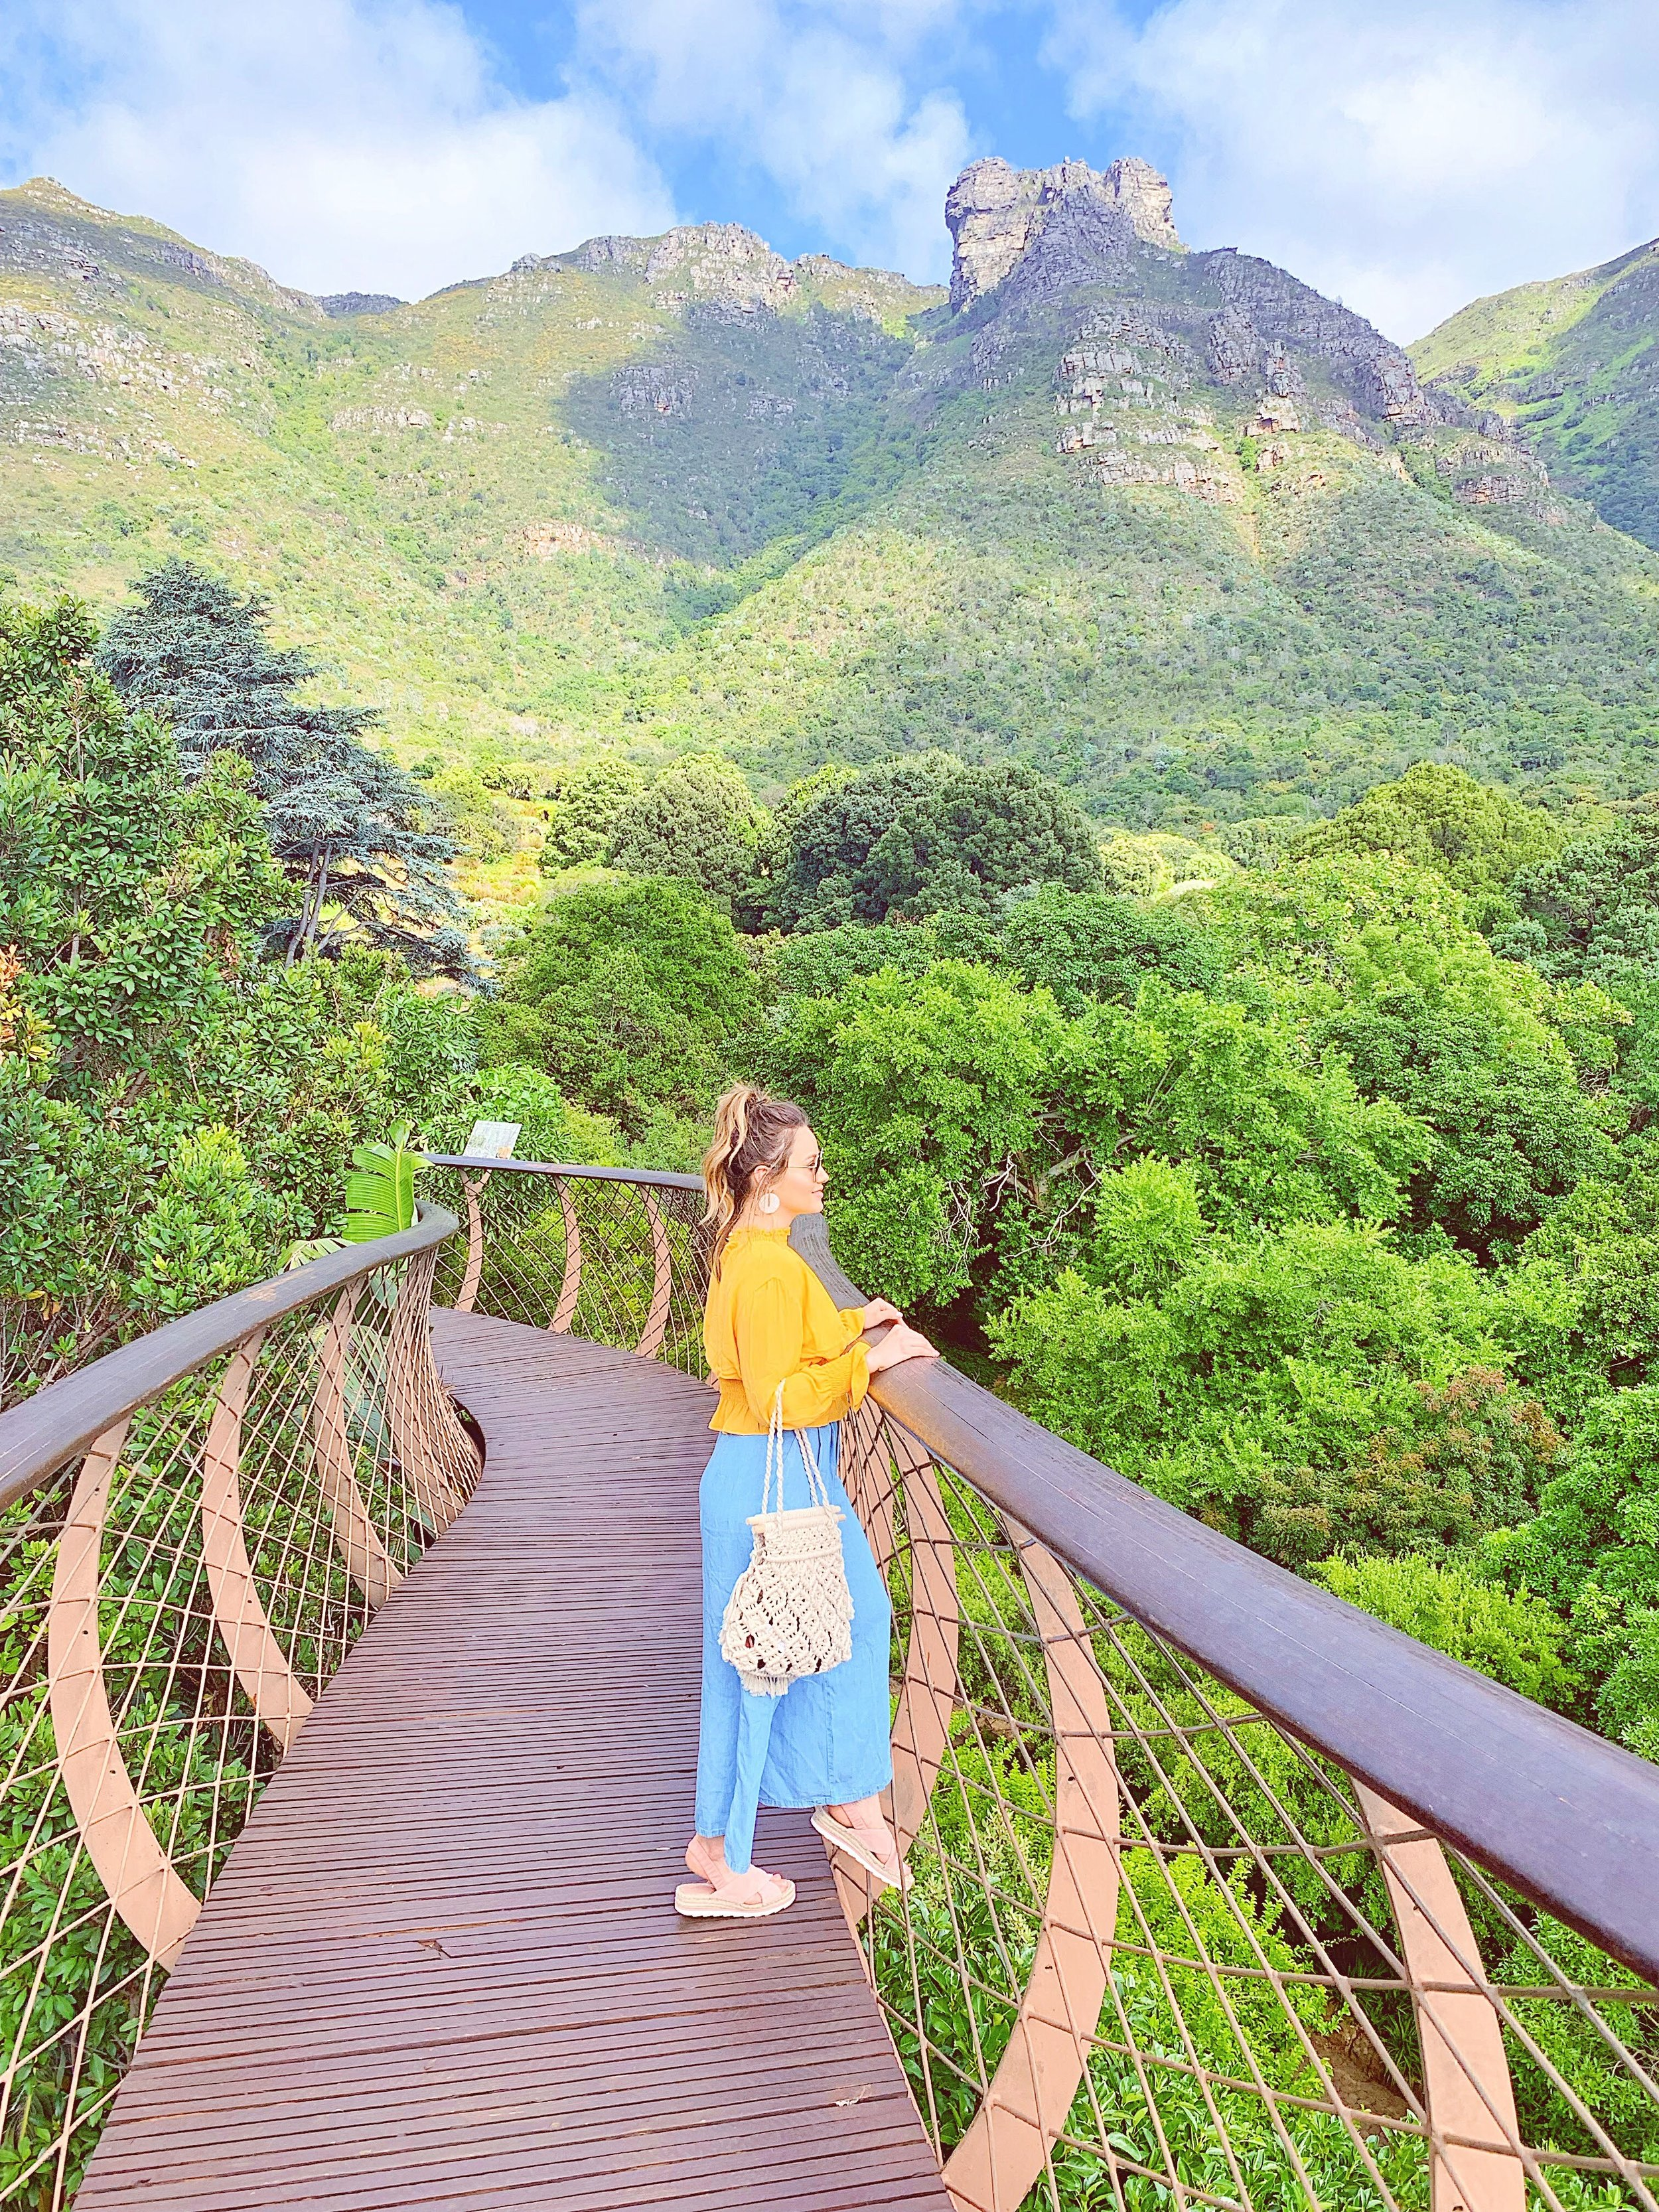 Kirstenbosch Canopy Walkway - We've been to a few botanical gardens in the past, but once again Cape Town's Kirstenbosch blew the others away. Everything was so beautifully landscaped and so luscious. Def a must see!